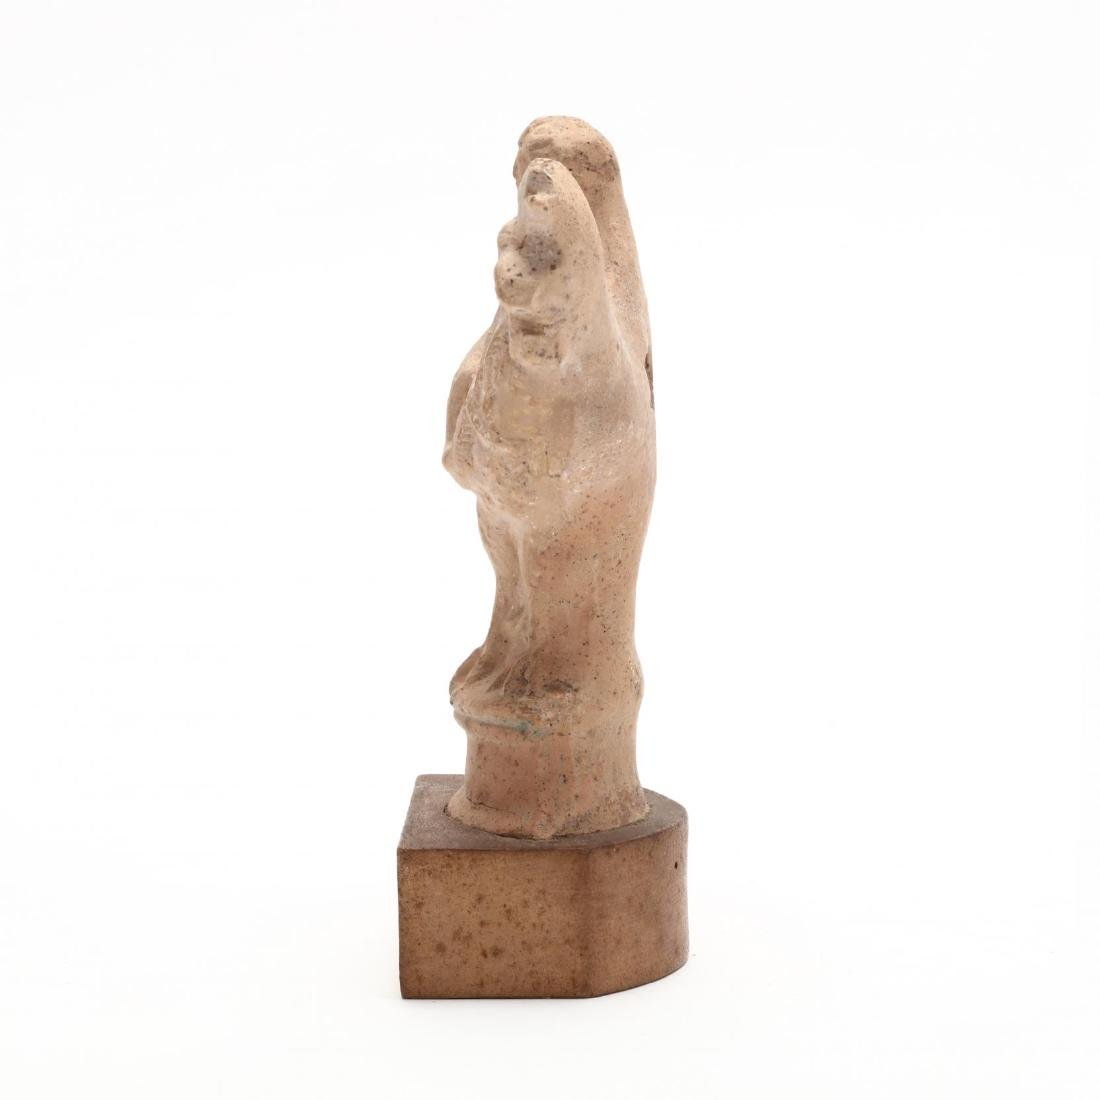 Cypriot Molded Hellenistic Terracotta Sculpture - 2